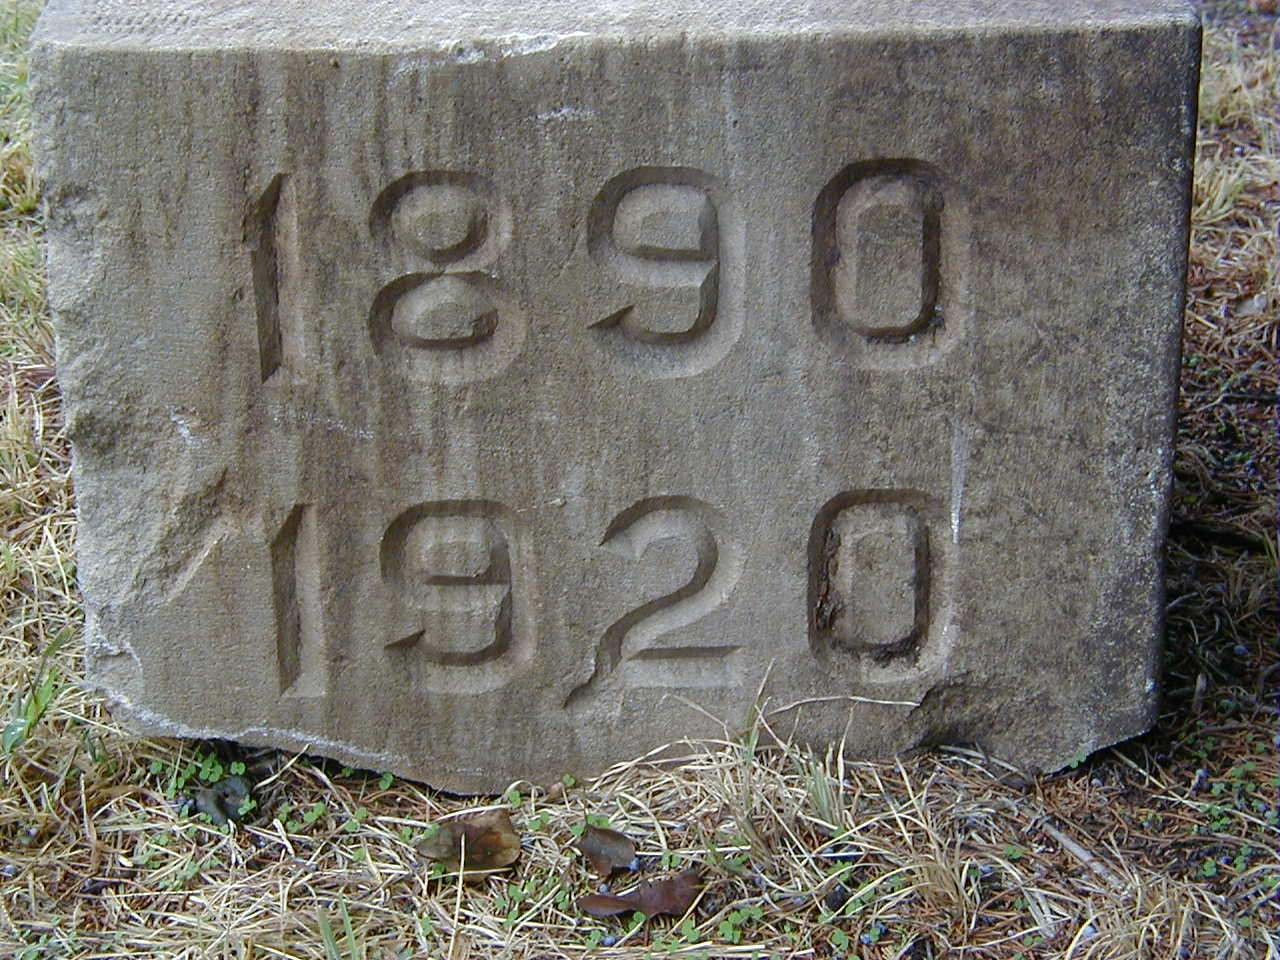 Cornerstone from brick addition of Old Folks Home. This block was kept by Roger Hornbaker when he remodeled the Old Folks Home into our family farm house. The dates signify that the home had been in operation from 1890 - 1920 up to that point